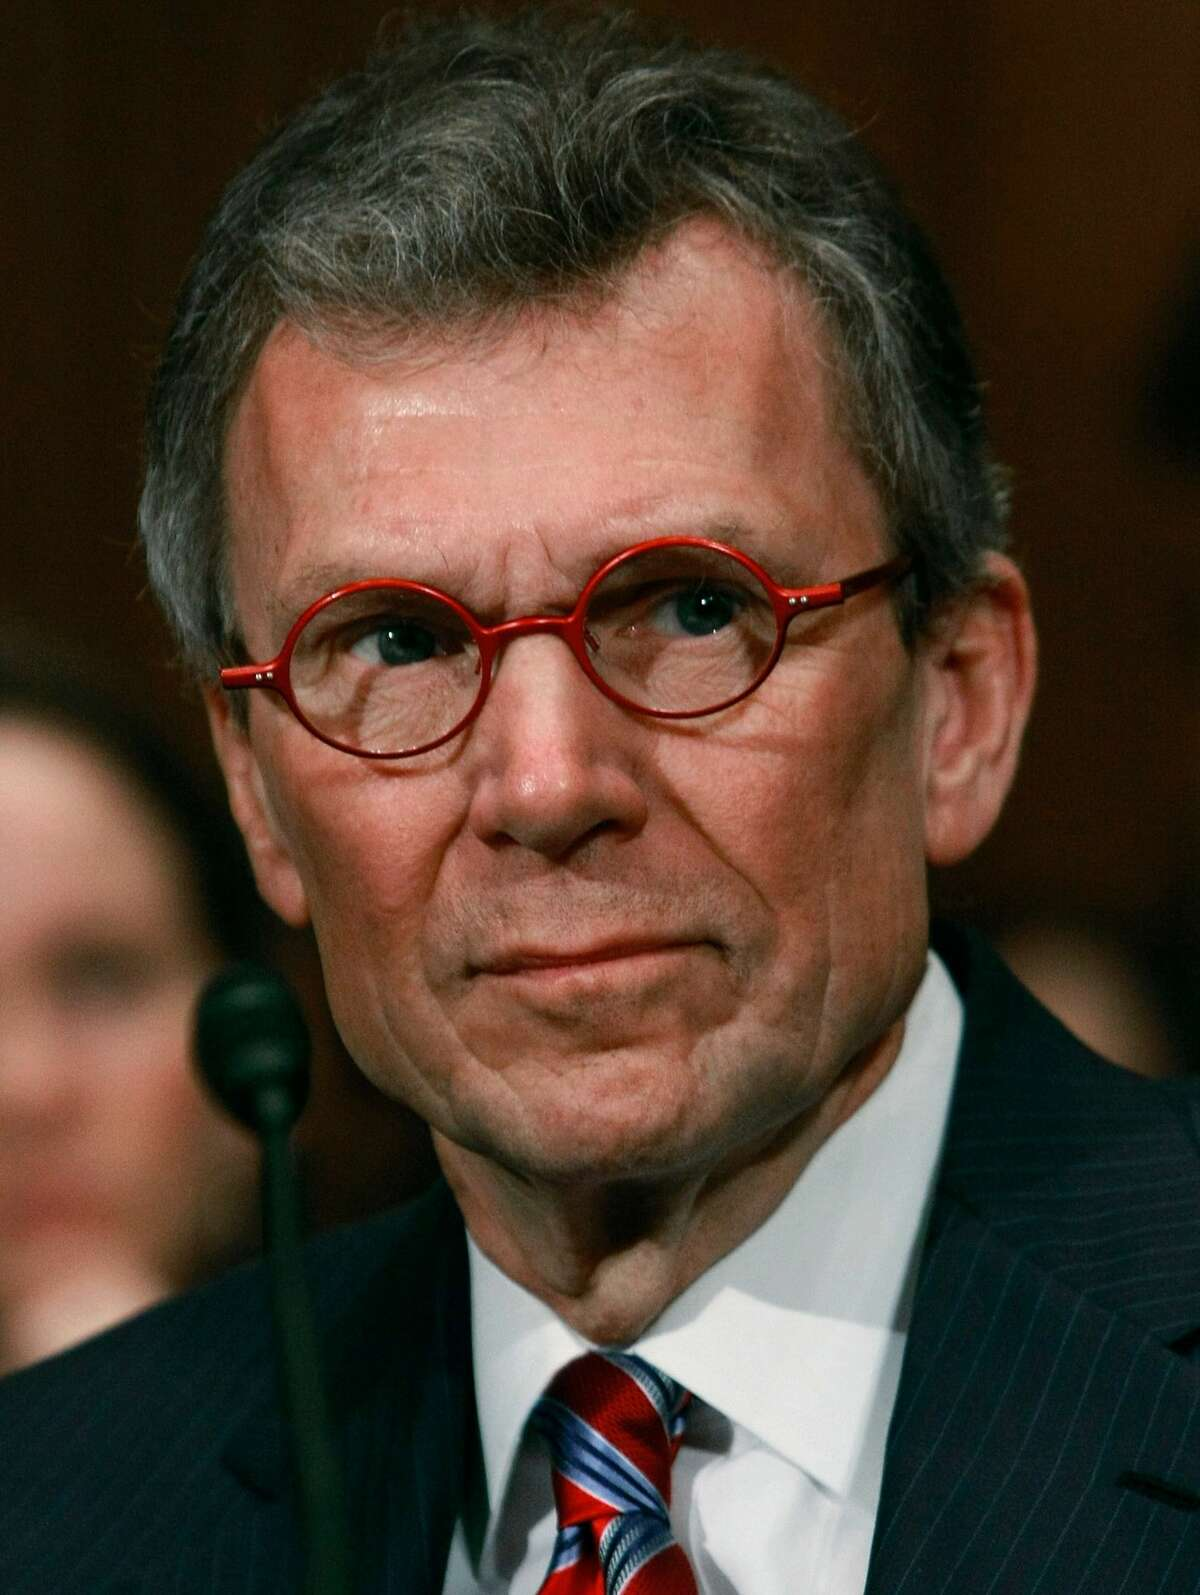 Former Senate Majority Leader Tom Daschle (D-SD) participates in his Senate Confirmation hearing before the Senate Health, Education, Labor and Pensions Committee on Capitol Hill January 8, 2009 in Washington, DC.(Photo by Mark Wilson/Getty Images)